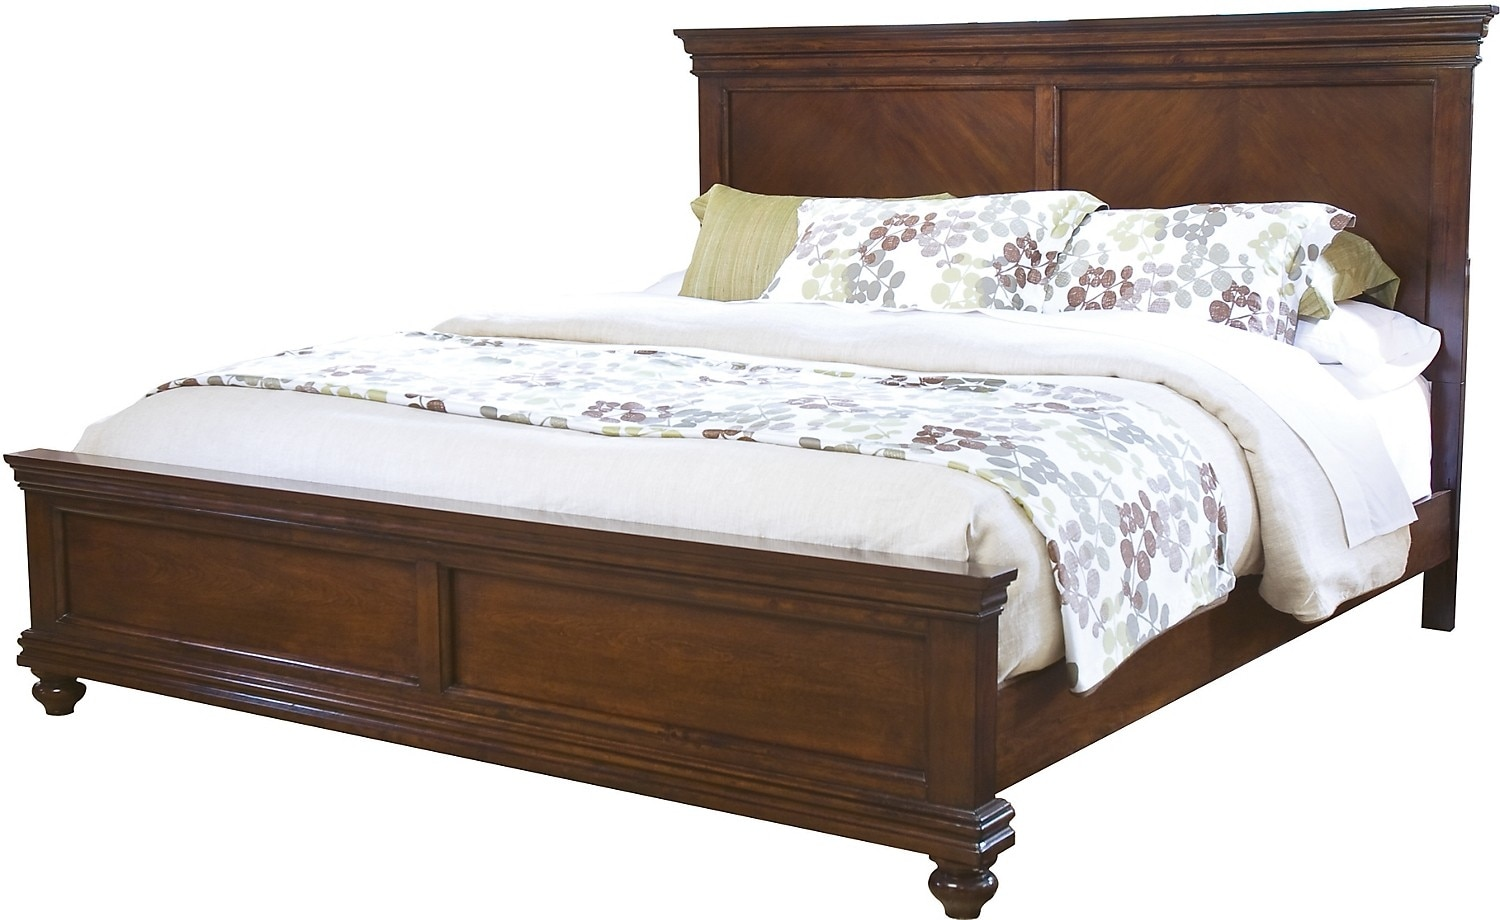 Bedroom Furniture - Bridgeport King Sleigh Bed